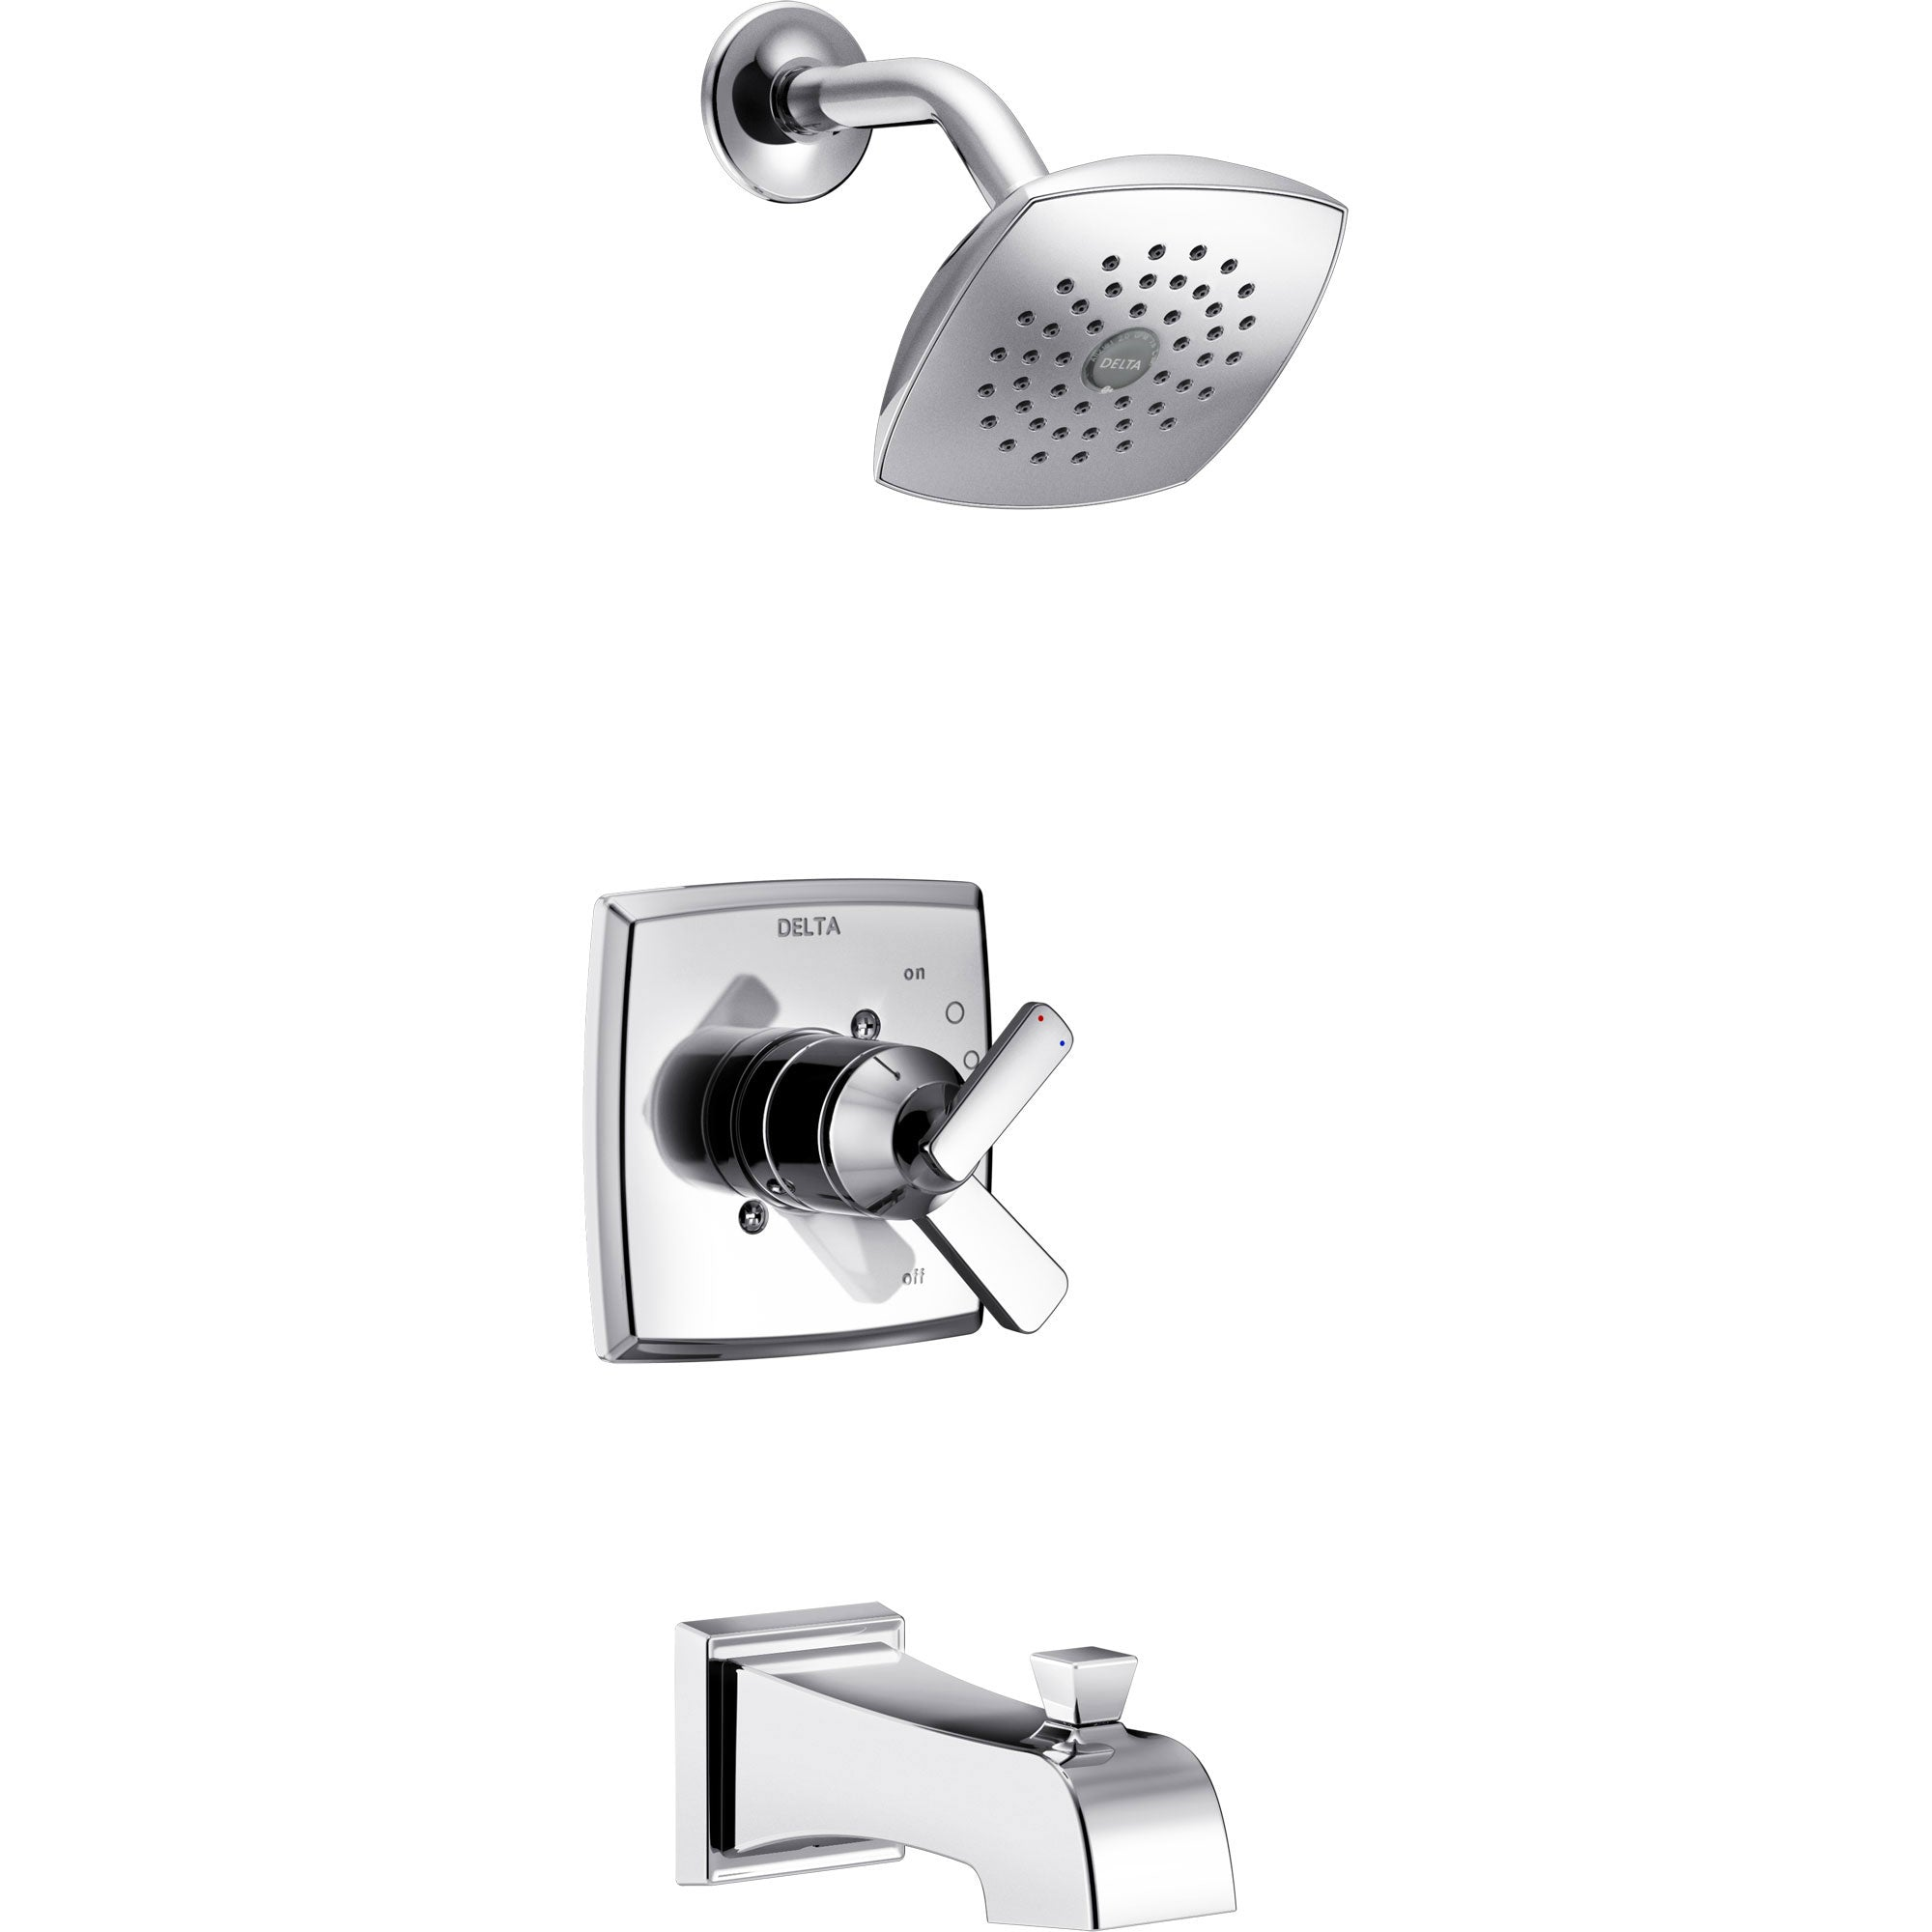 Delta Ashlyn Chrome Finish Monitor 17 Series Tub and Shower Combo Faucet with Dual Temperature and Pressure Control INCLUDES Rough-in Valve D1124V